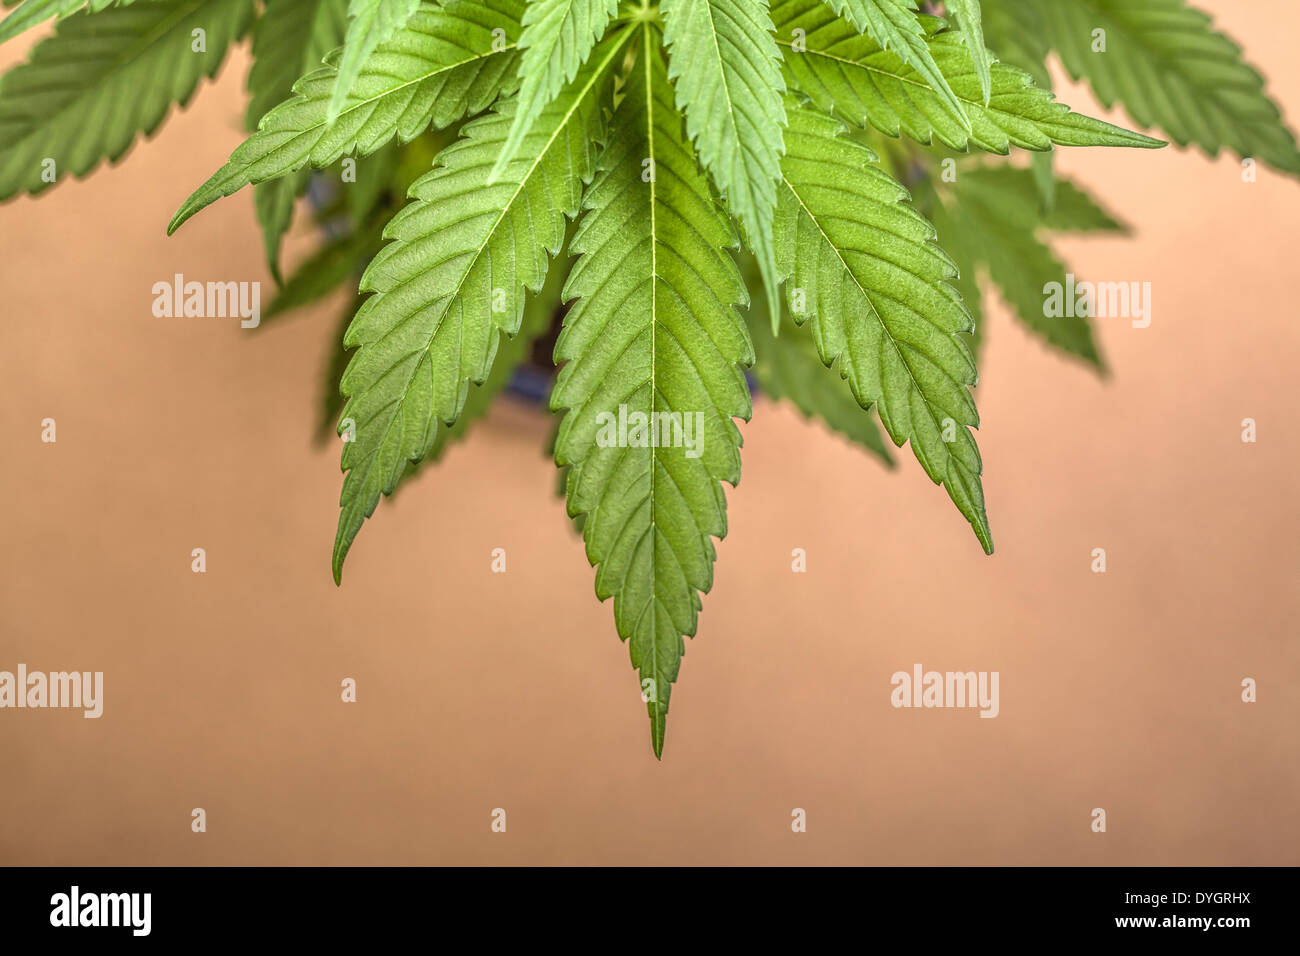 Sativa Dominant Strain Stock Photos & Sativa Dominant Strain